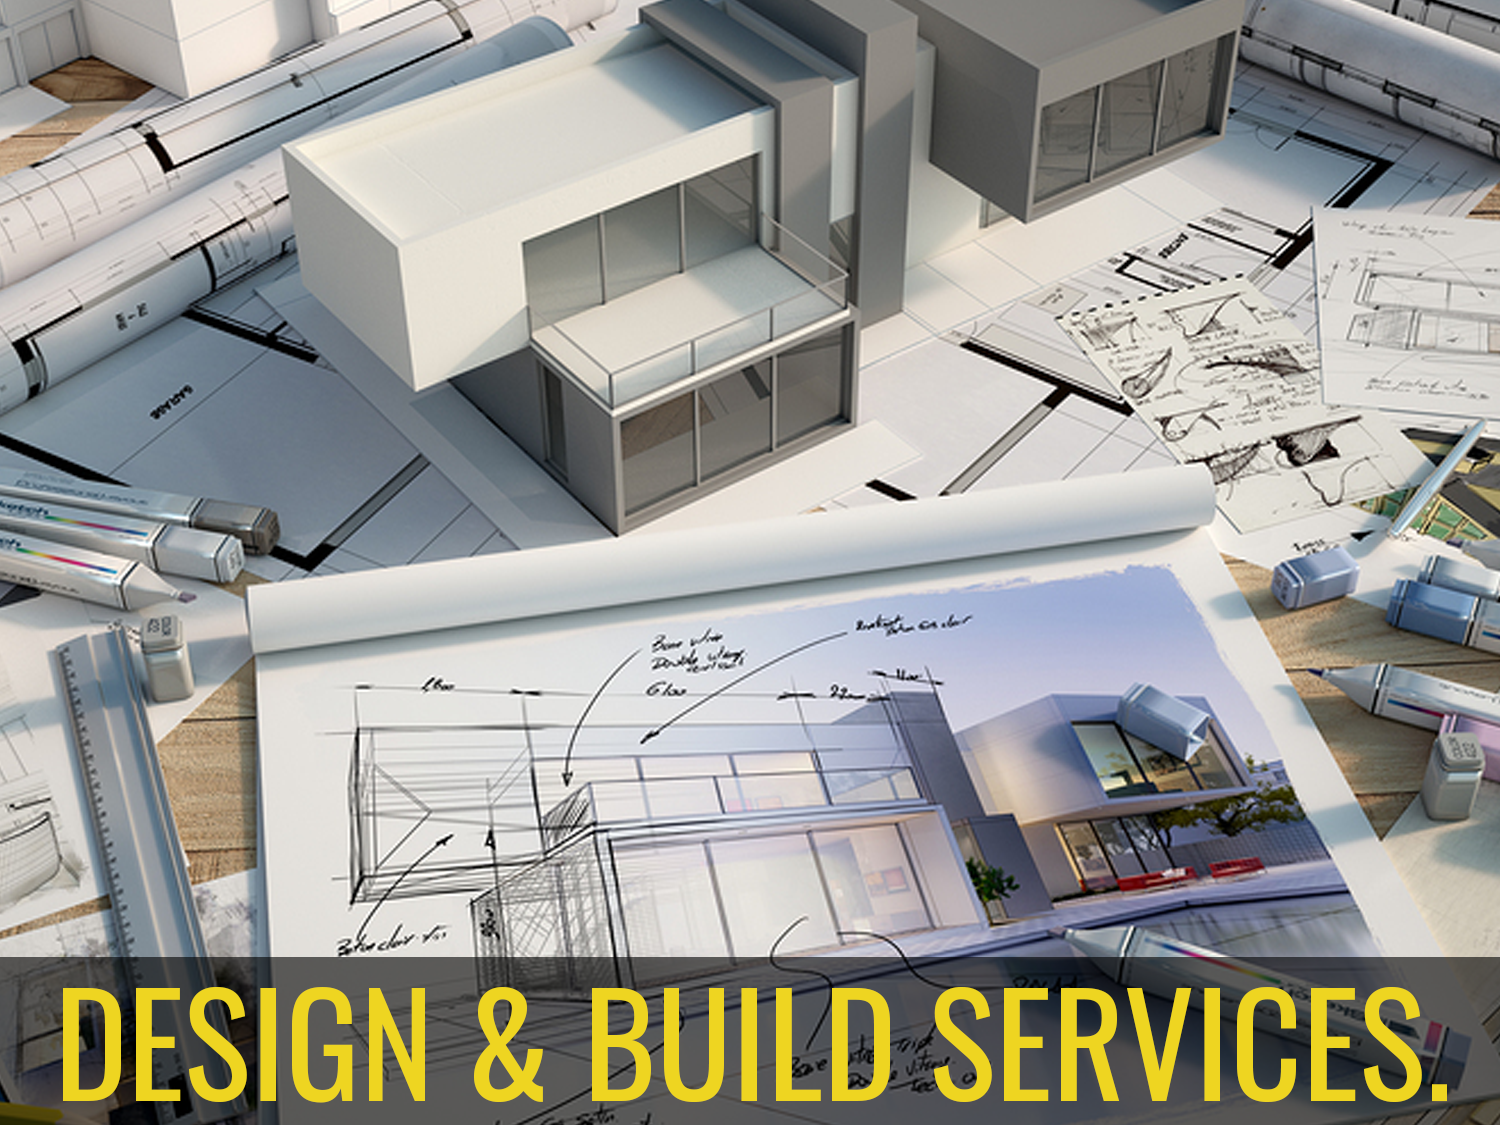 Design and Build services